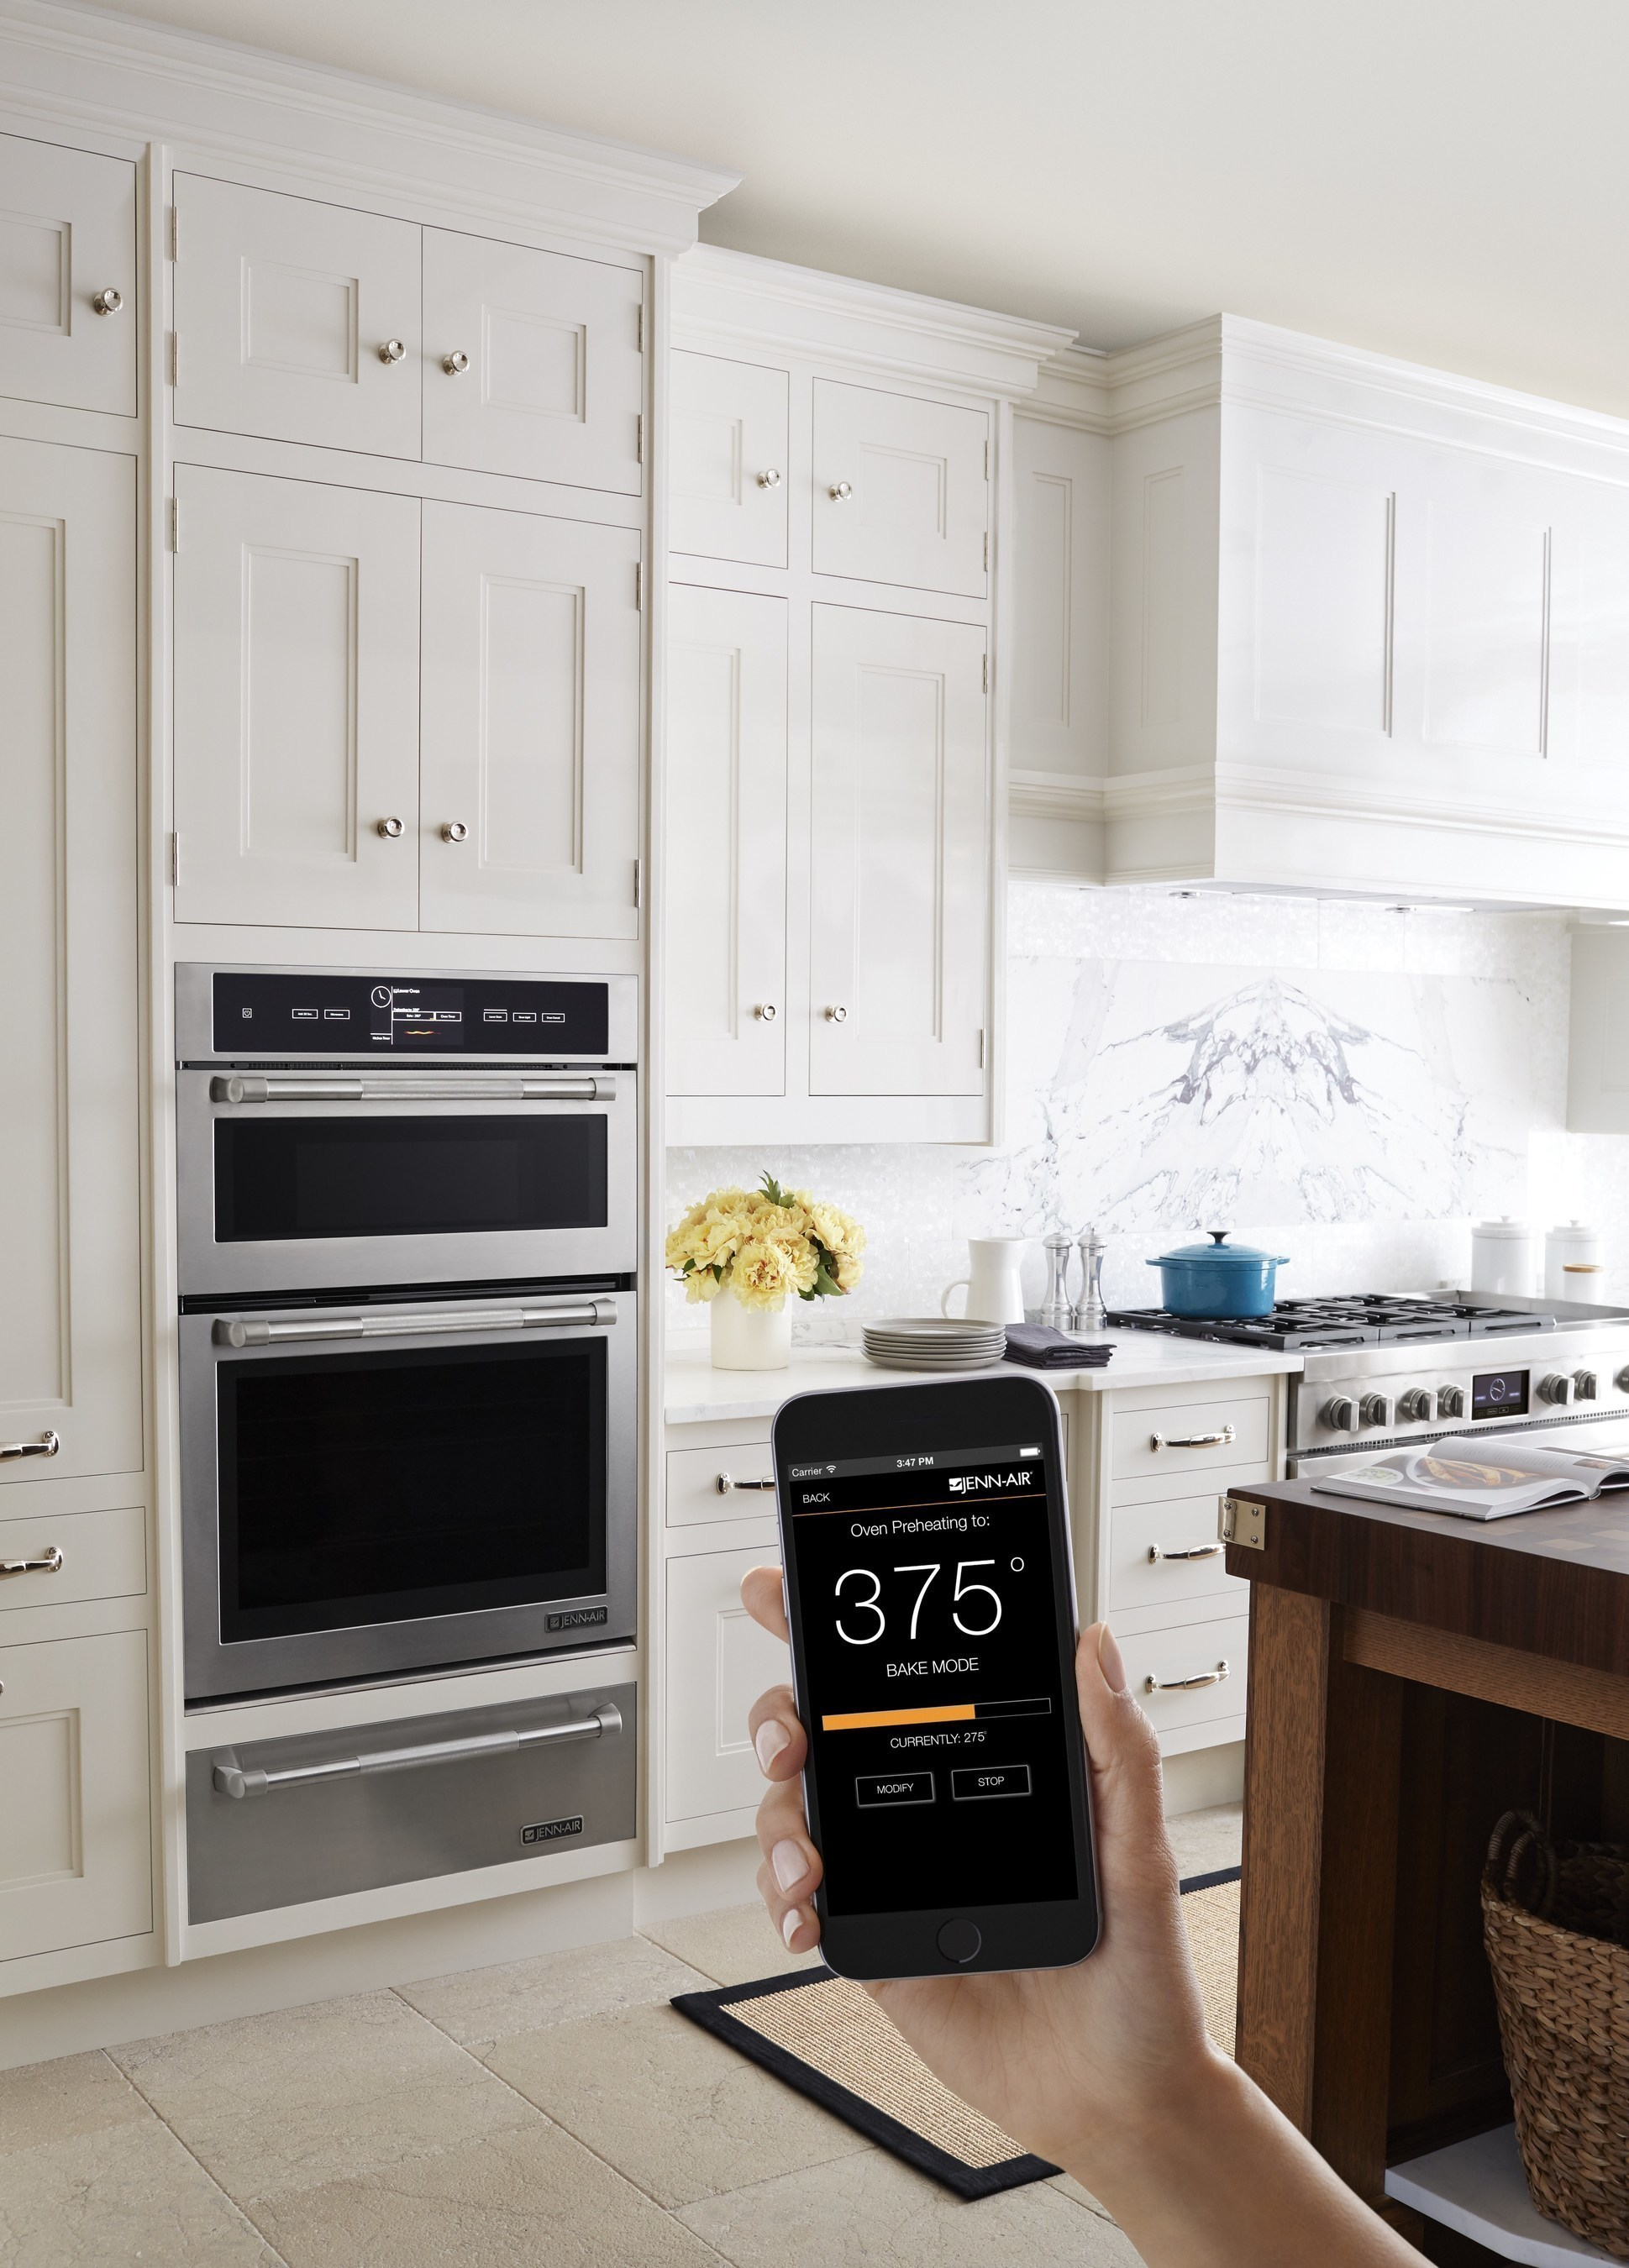 Jena-Air Connected Wall Oven with Nest integration